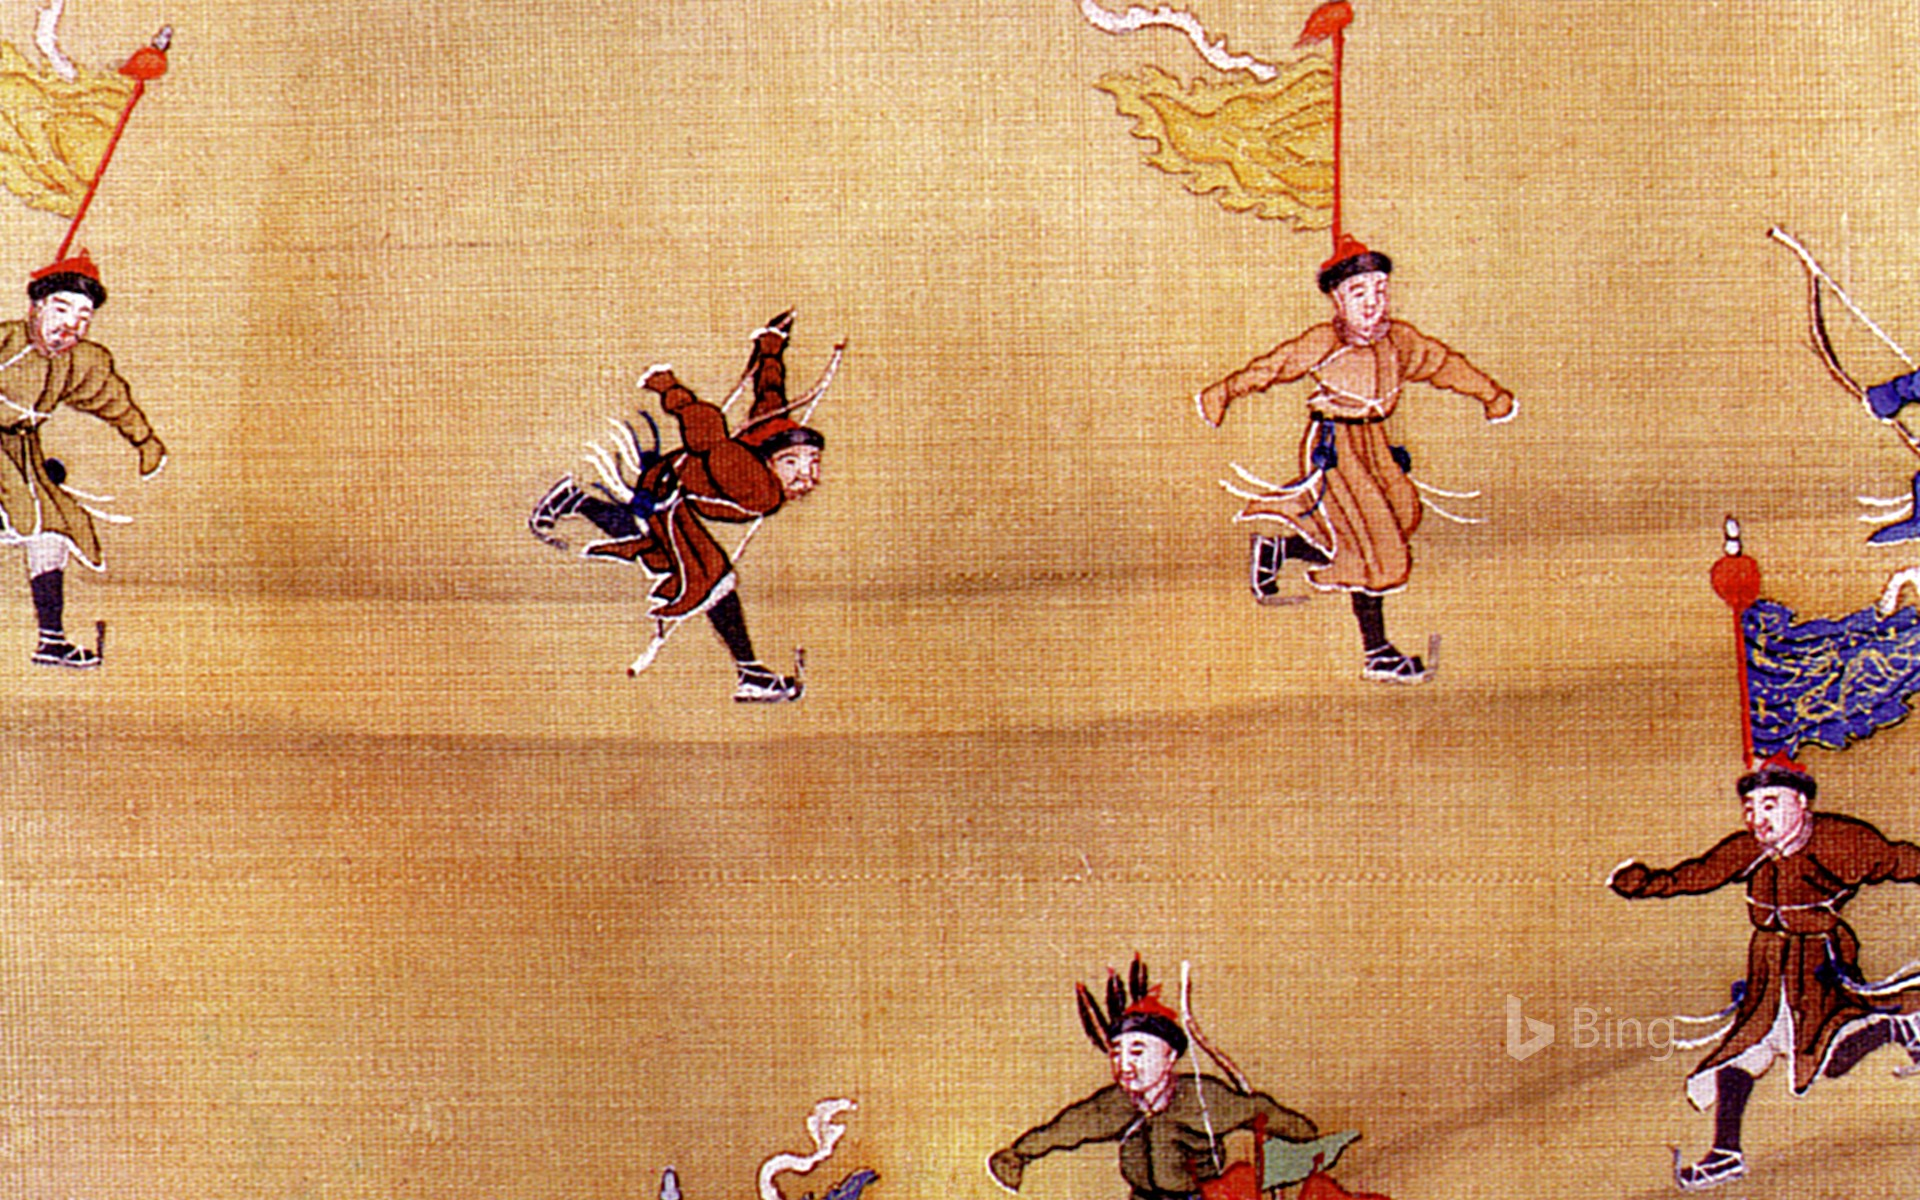 [Today's Winter Solstice] Chinese Ancient Skating Figure